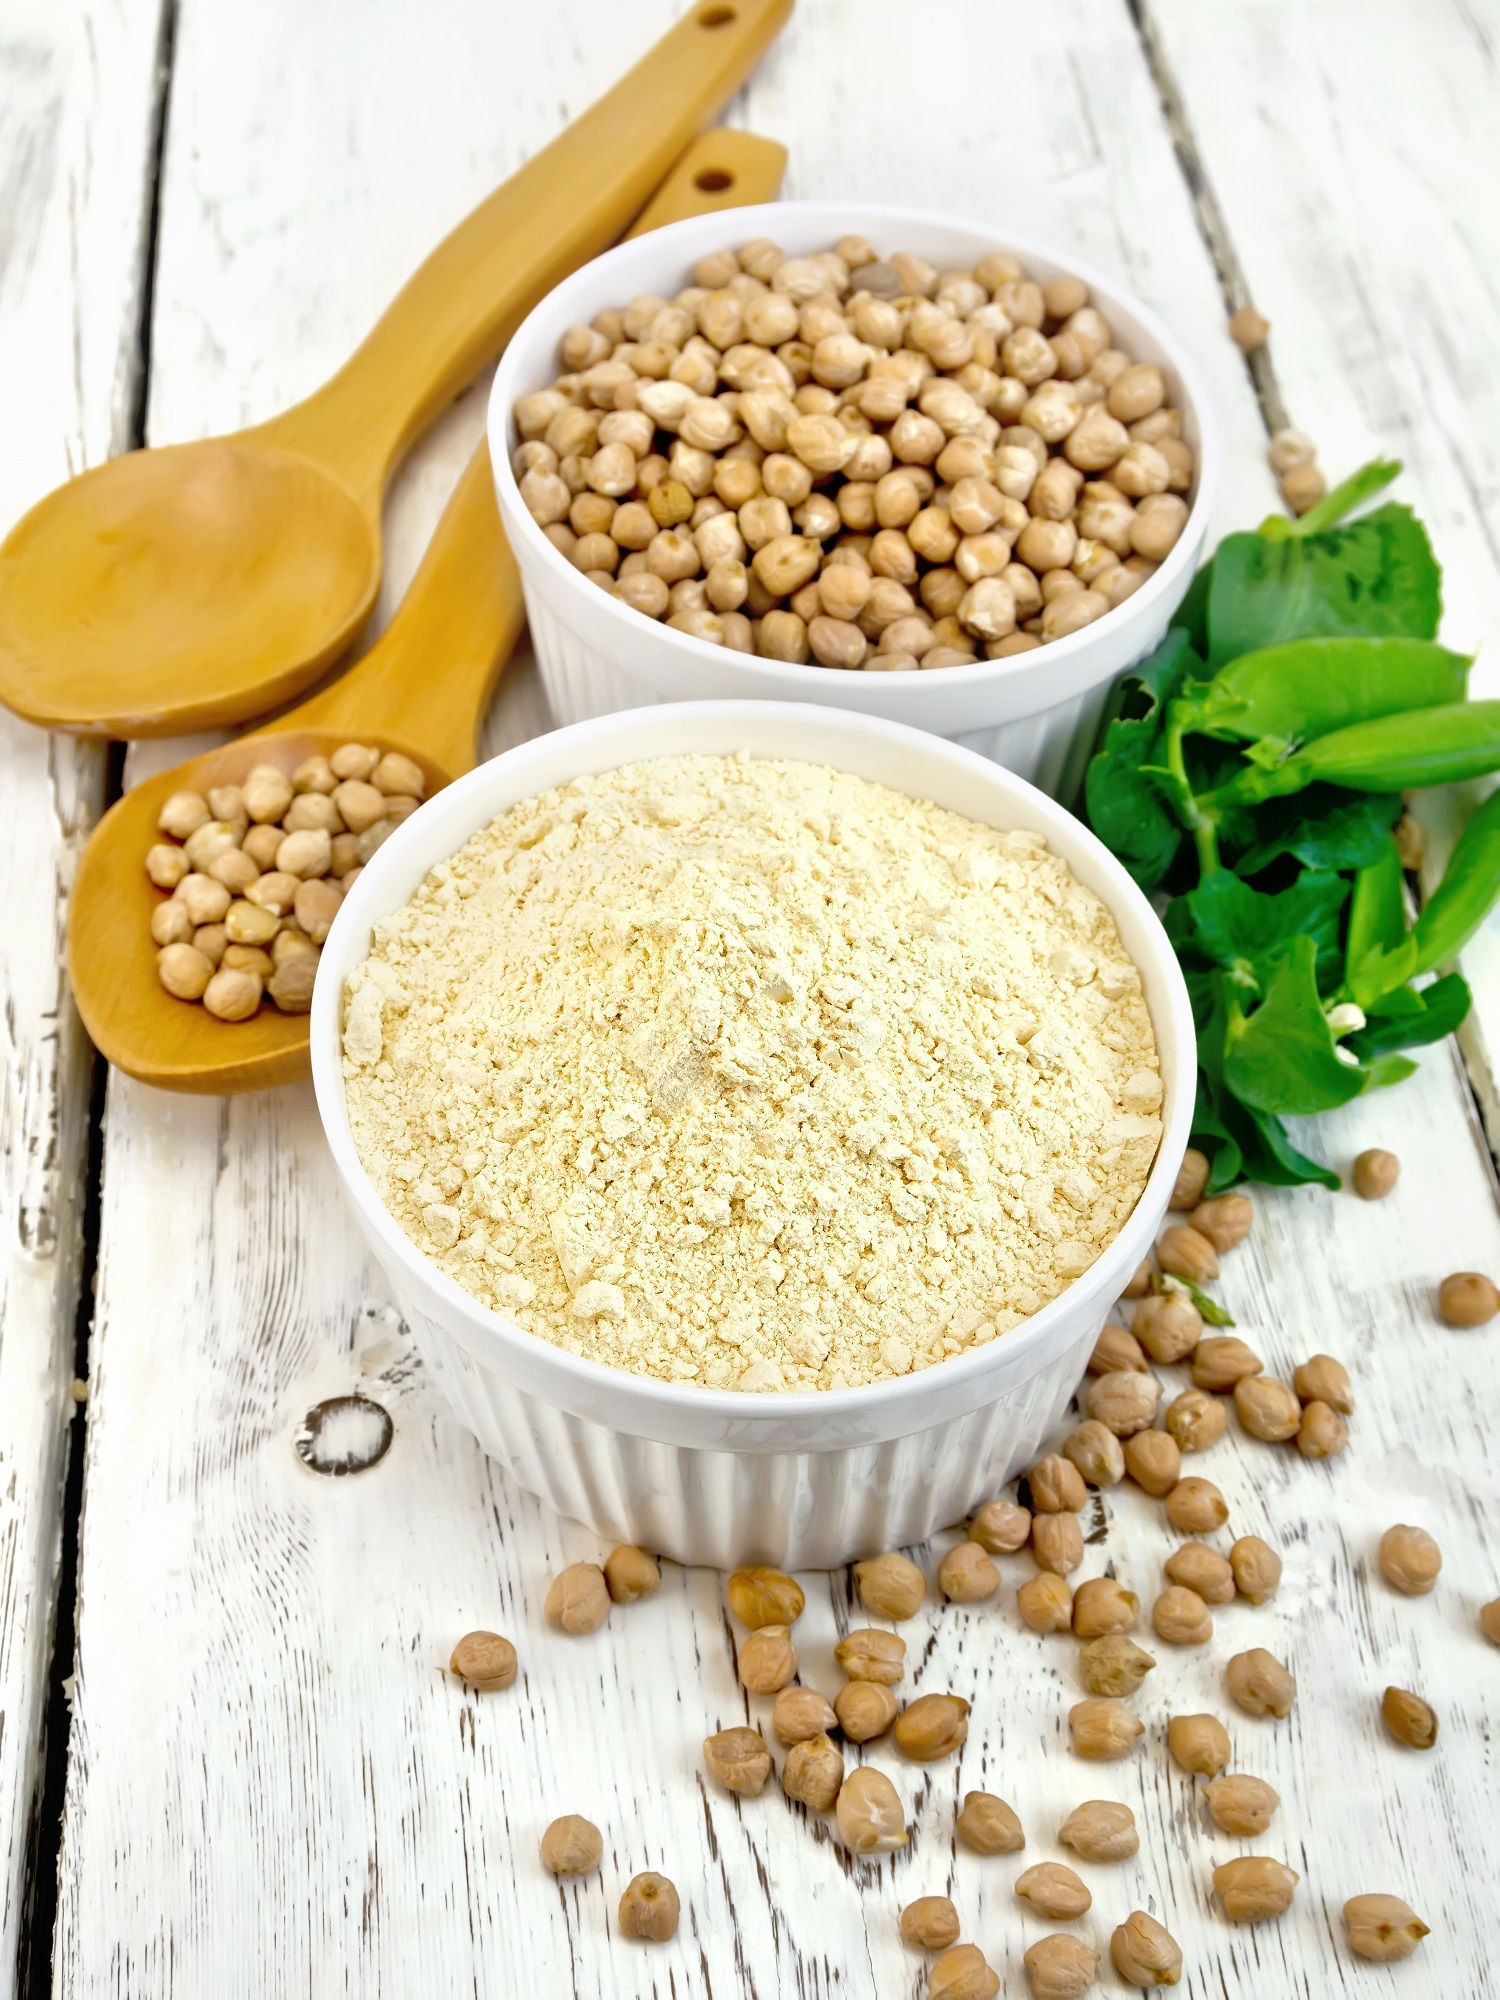 ChickP going commercial with novel protein